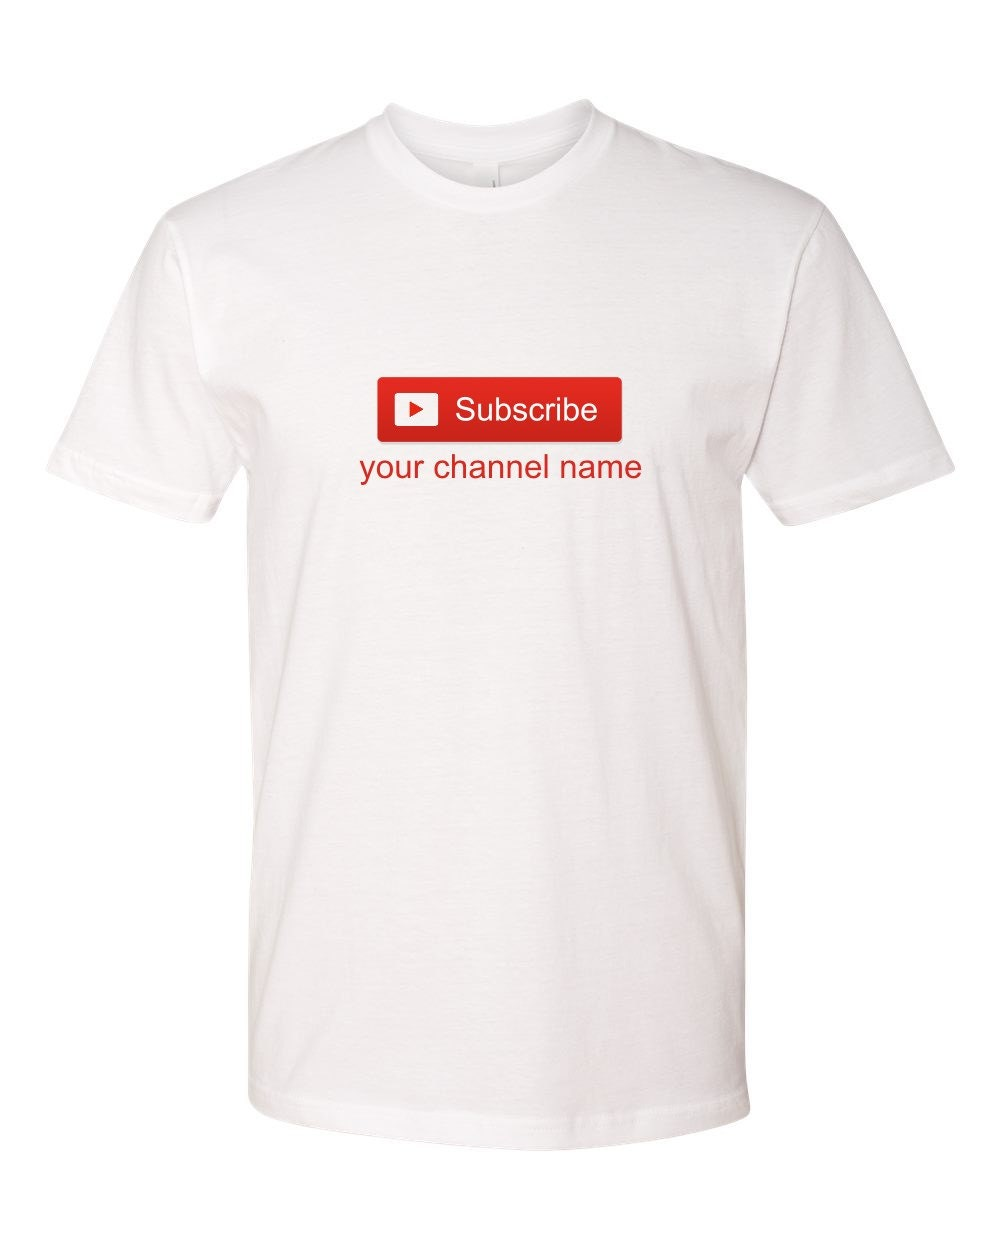 Baby escapes crib youtube - Youtube T Shirt Subscribe To My Channel T Shirt Mens Womens Kids Baby Customize Personalize Youtube Channel Name